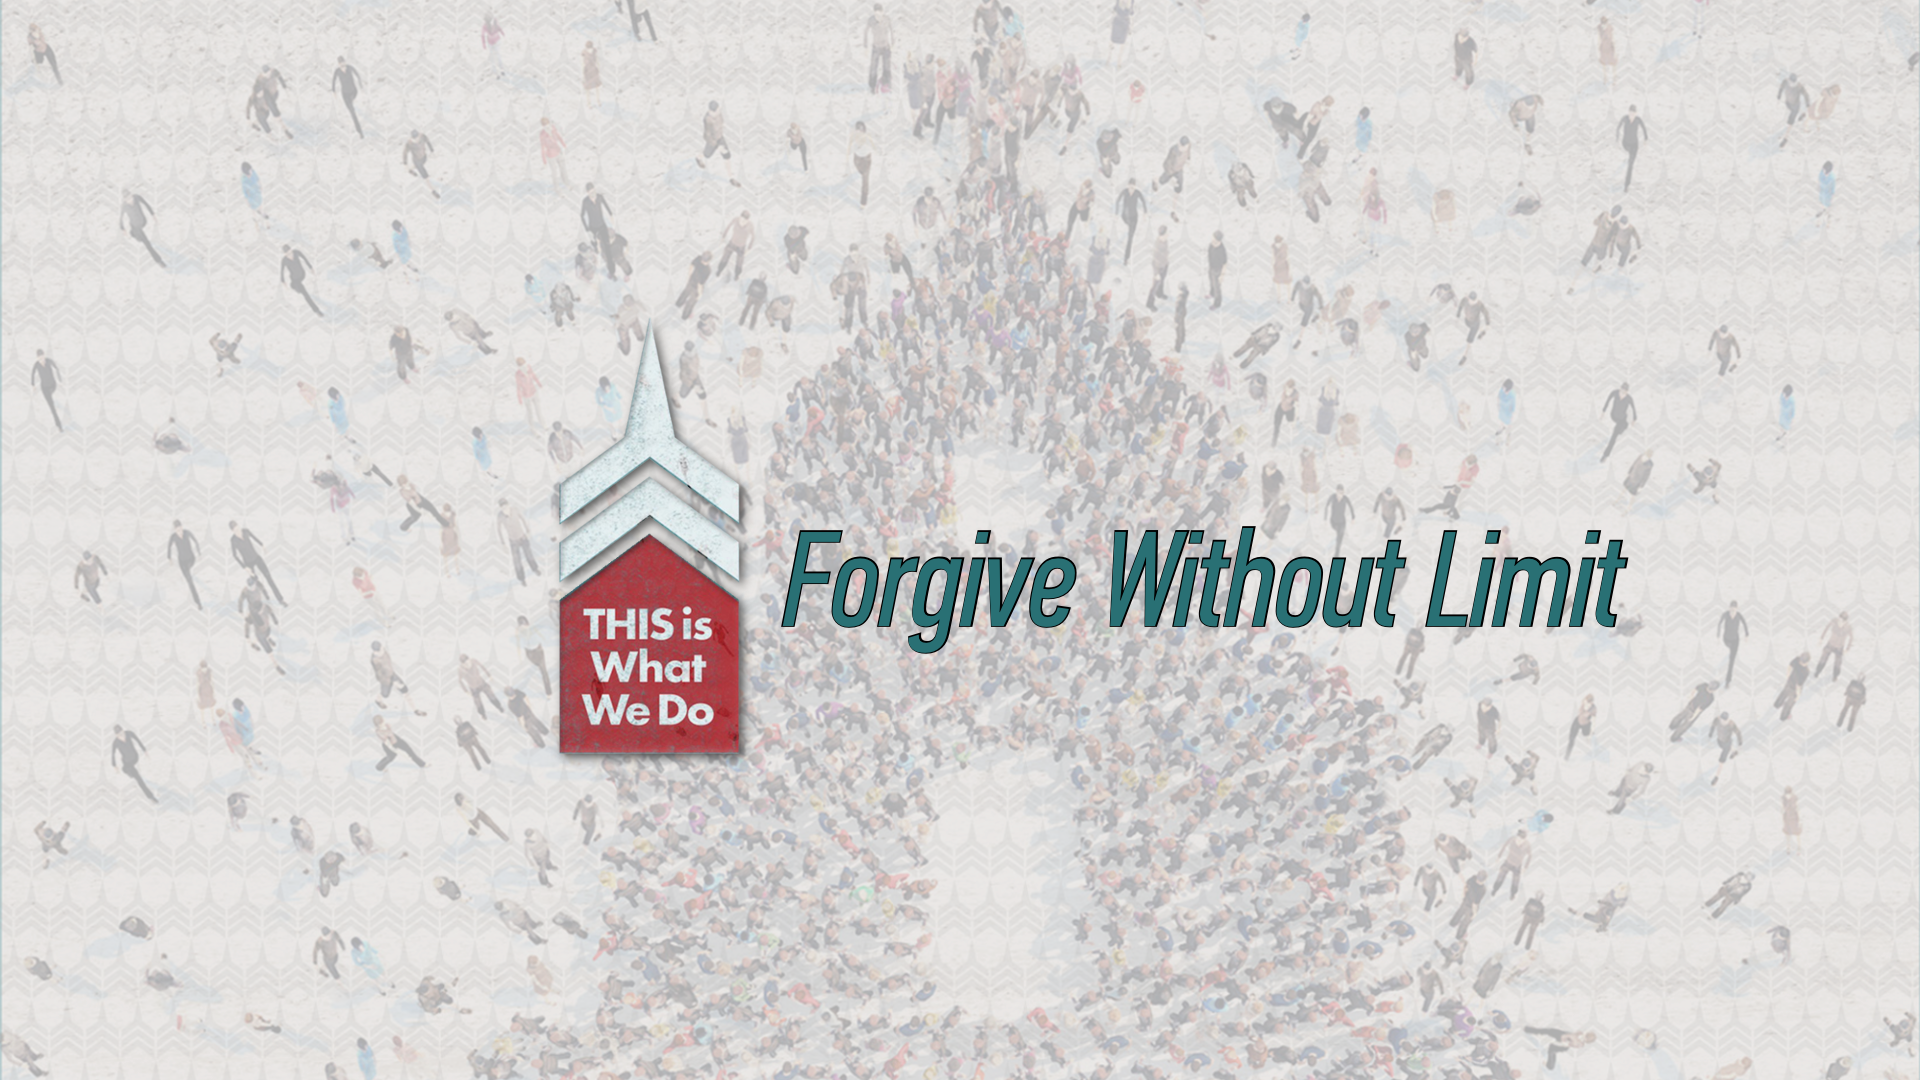 20170122 Forgive Without Limit.png